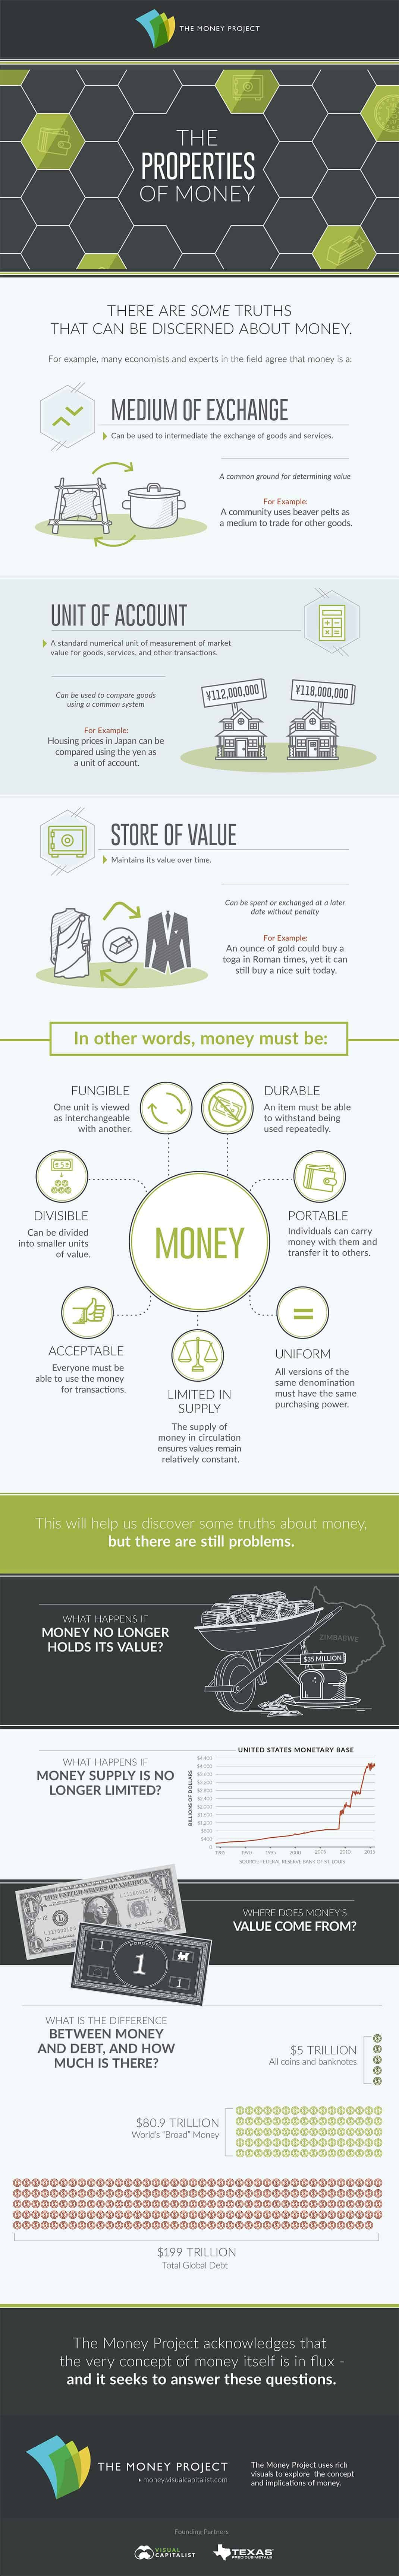 Infographic: The Properties of Money – The Money Project